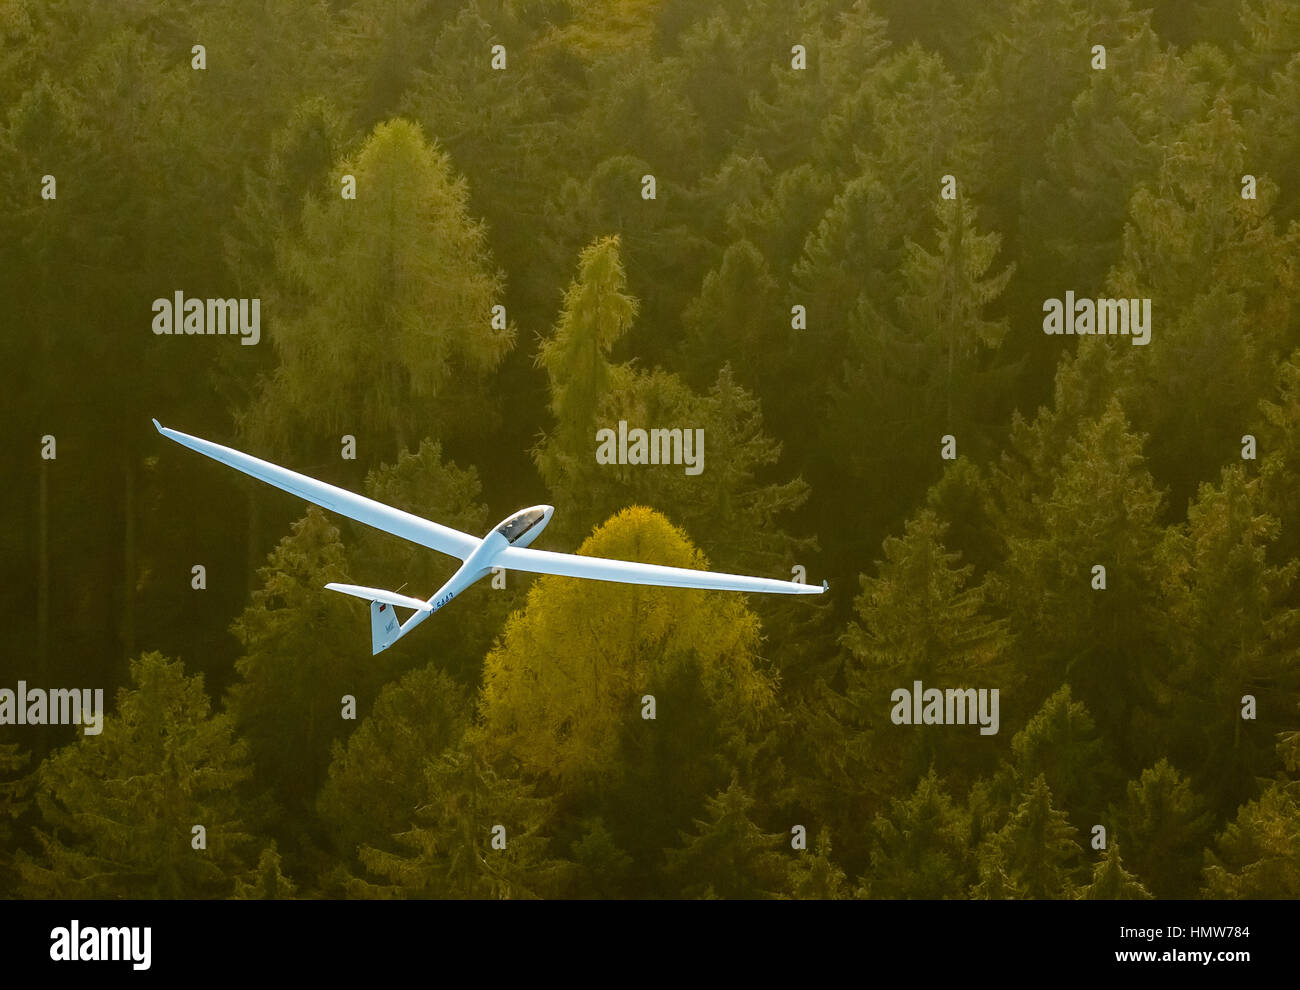 Glider, two-seater, Duo Discus D-5443 over autumn forest, near Arnsberg, Ruhr district, North Rhine-Westphalia, - Stock Image